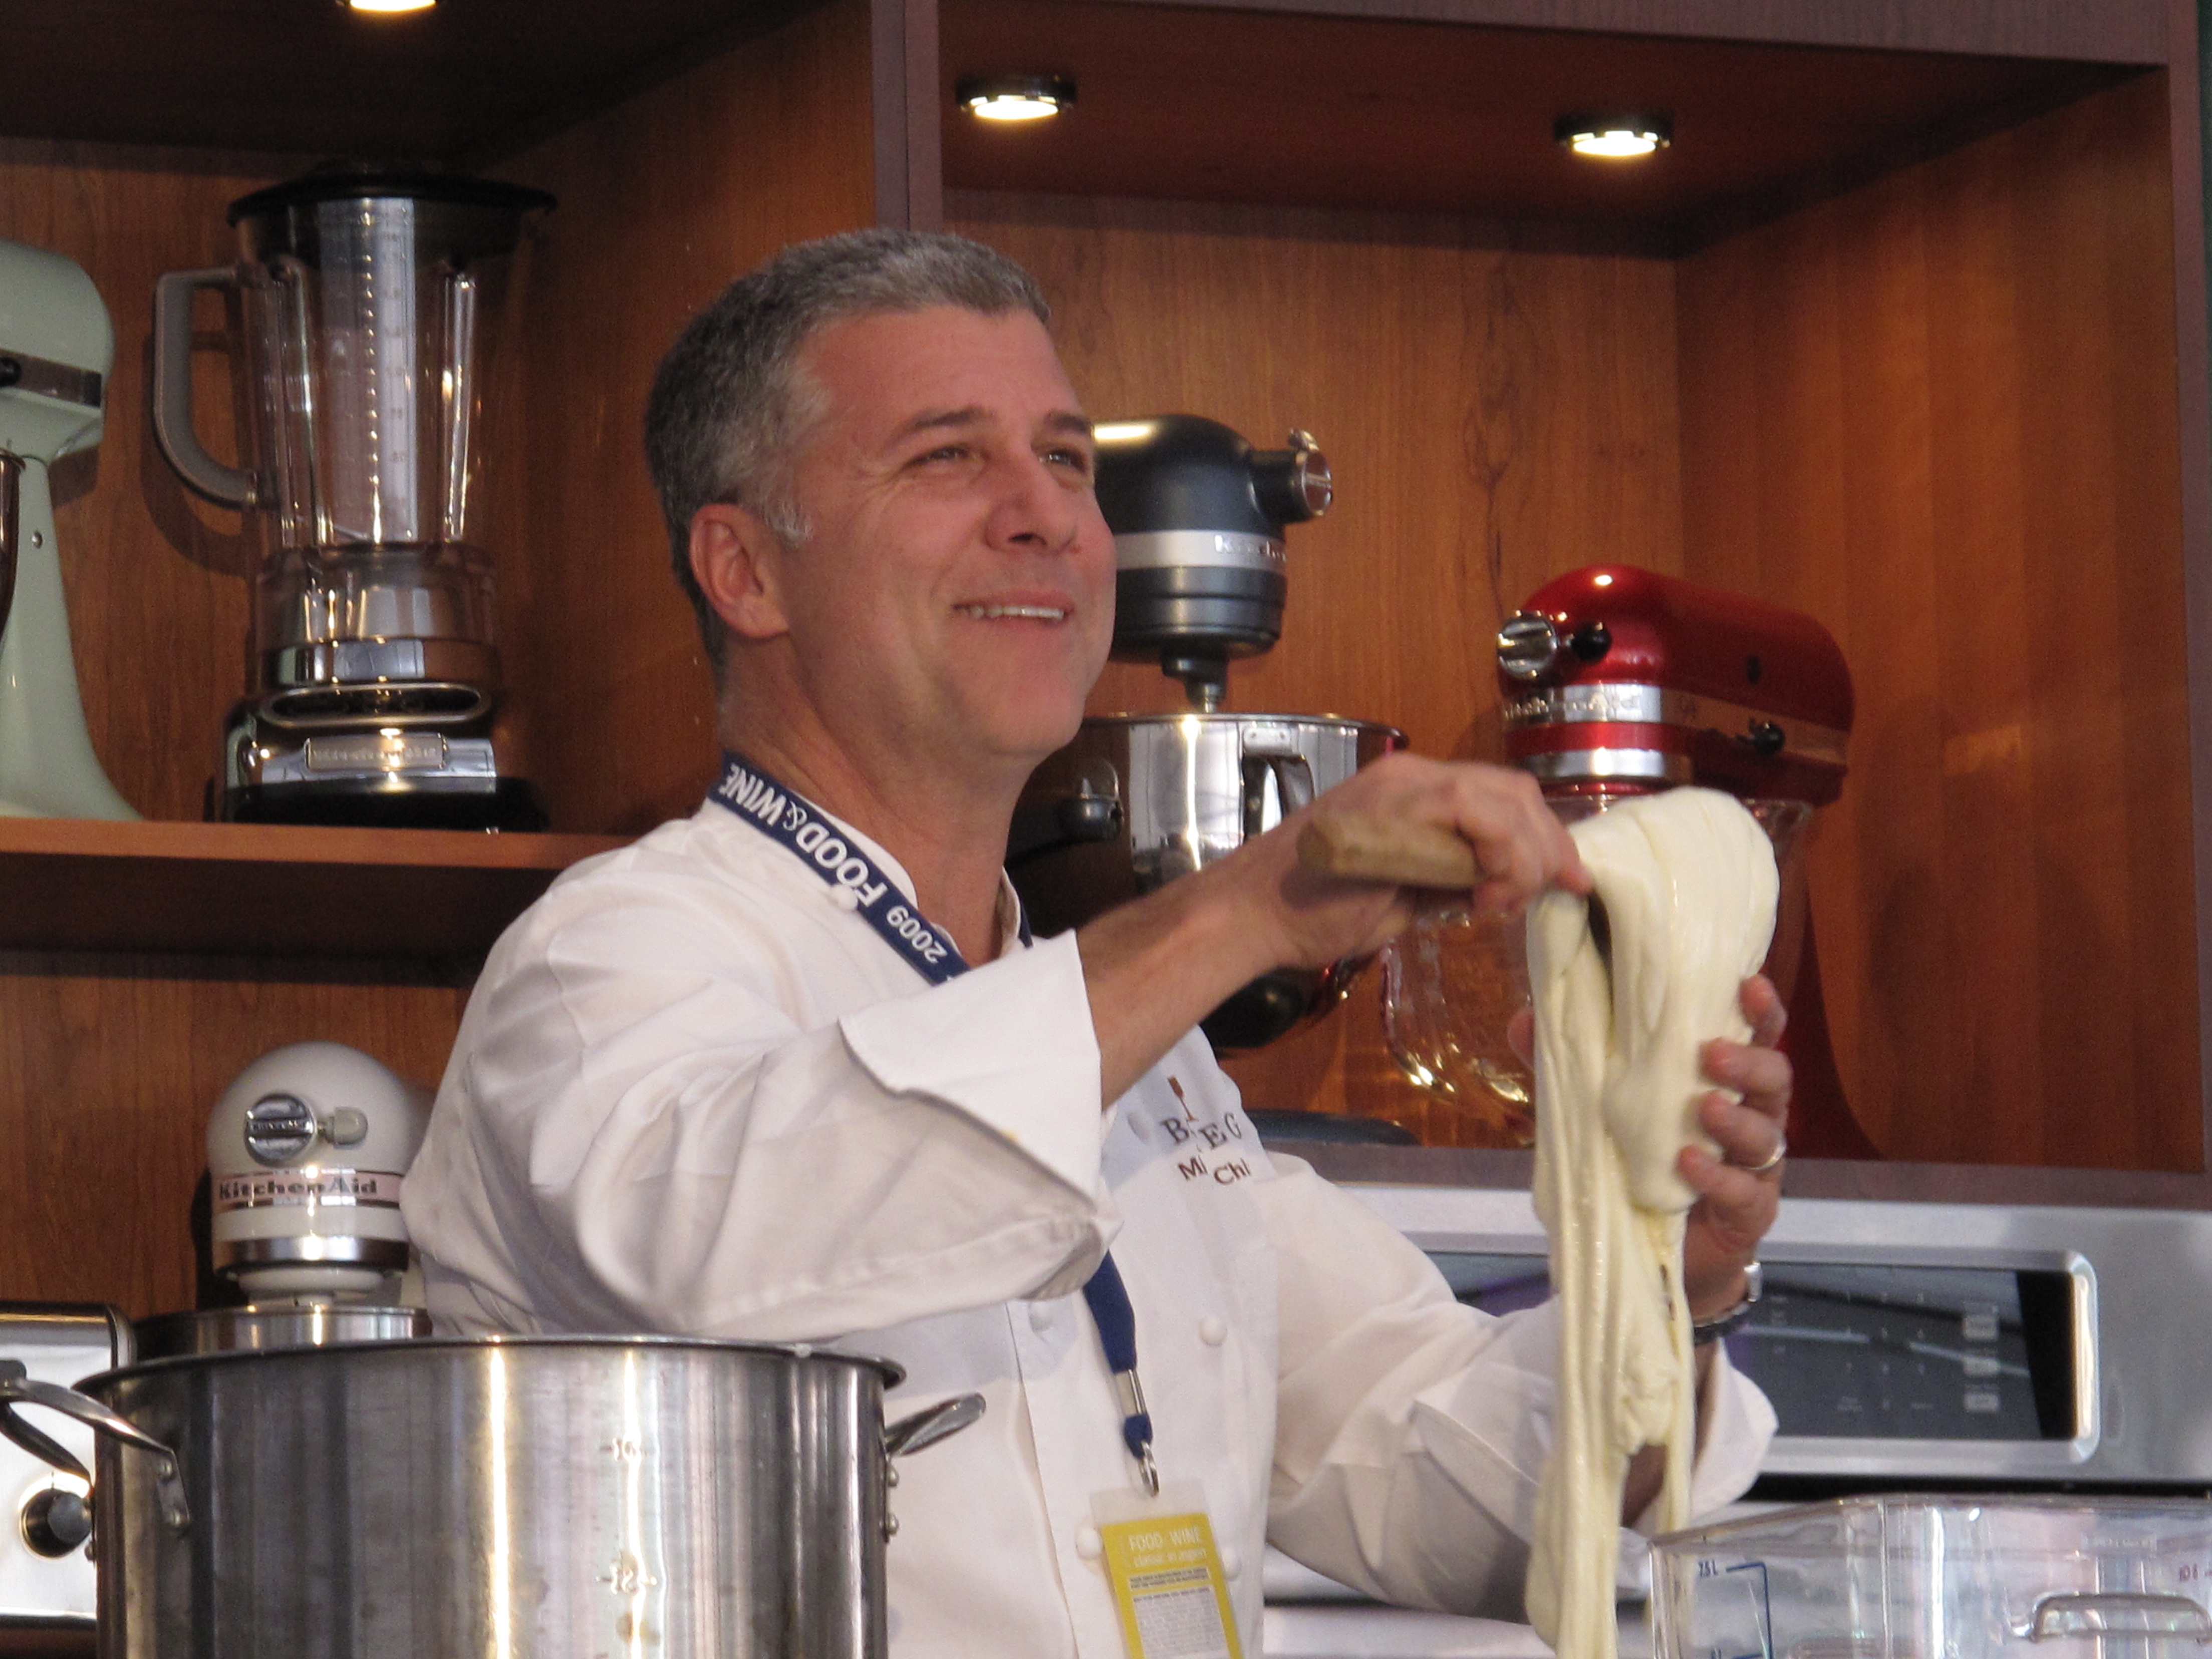 Michael Chiarello pulls fresh mozzarella.